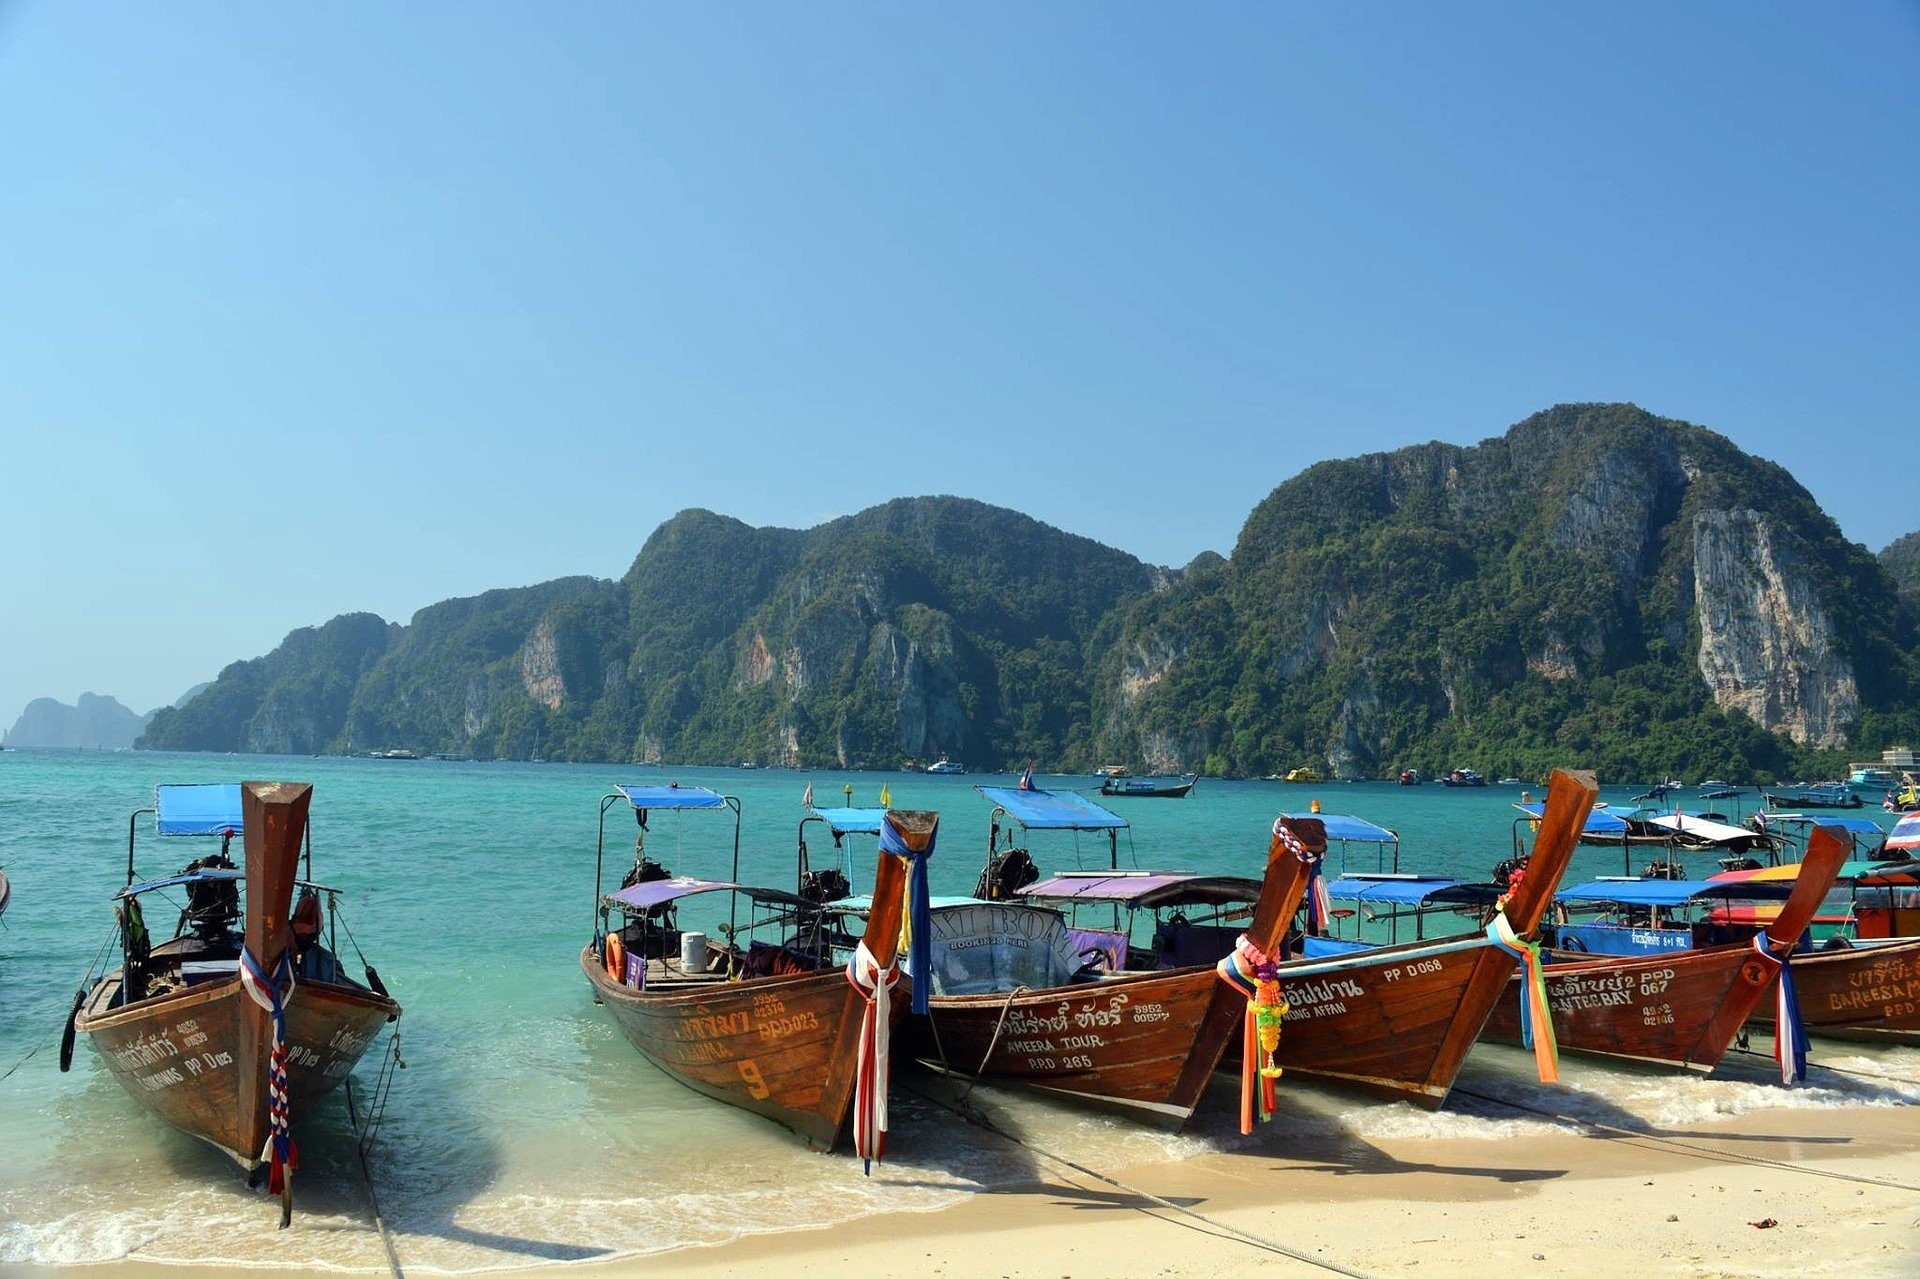 Beach on Koh Phi Phi